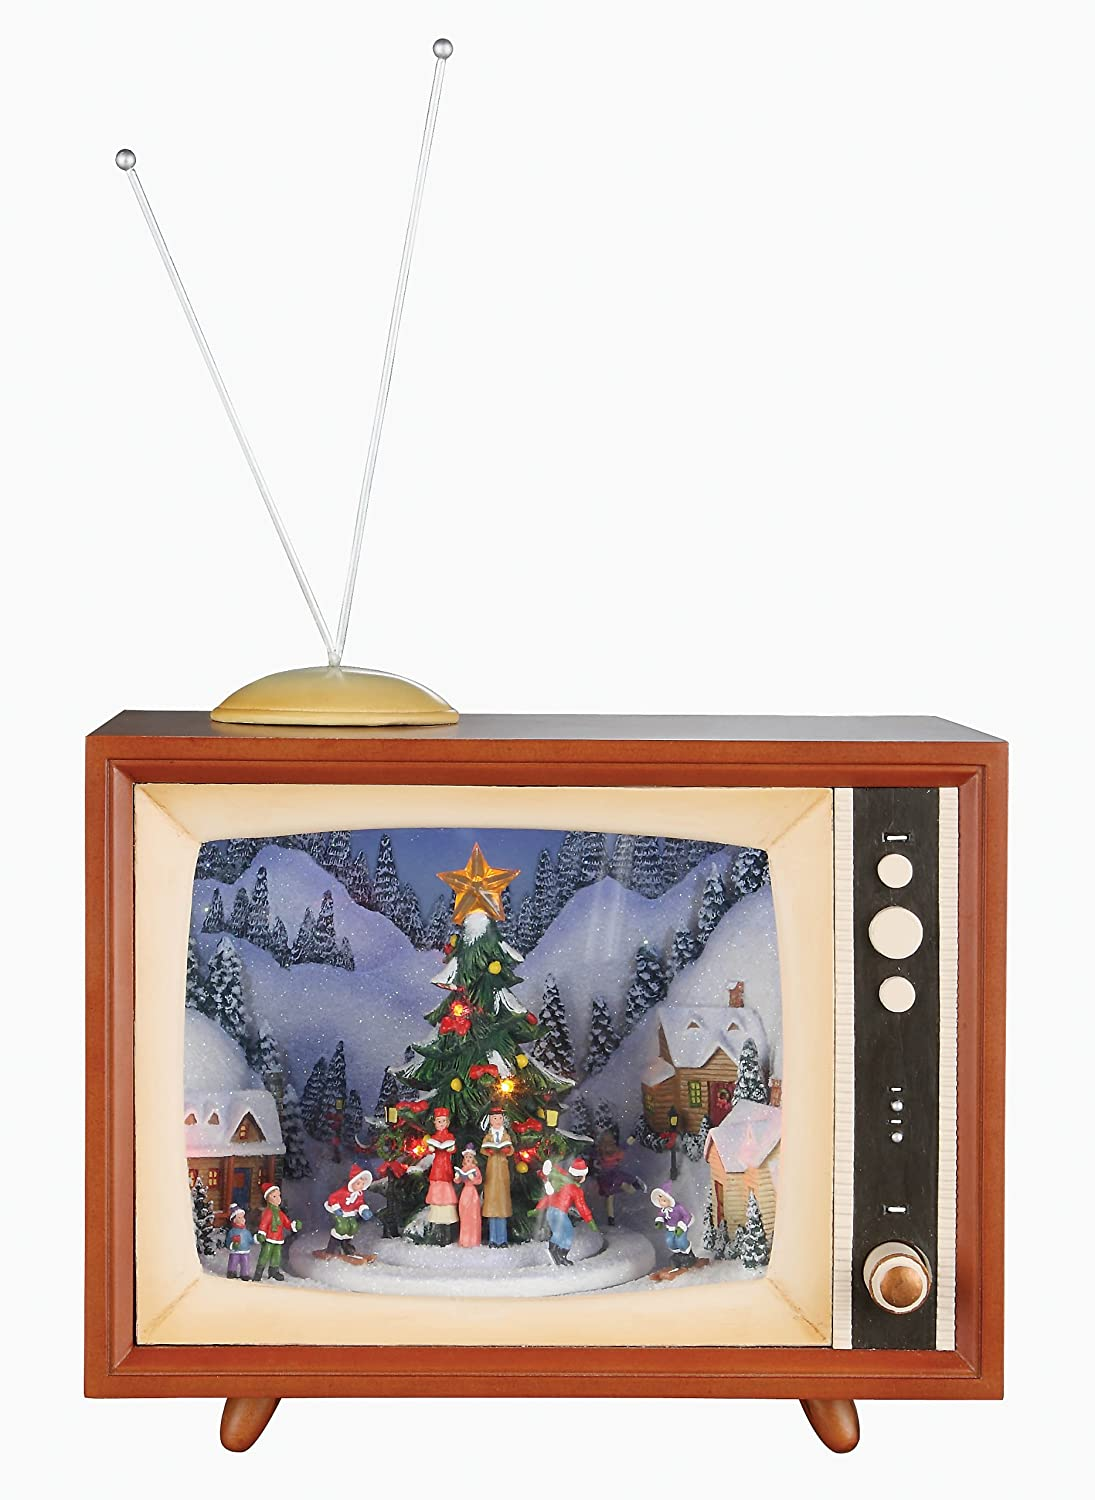 Amazon.com: Retro Action Musicals by Roman Action Musical Lighted TV ...